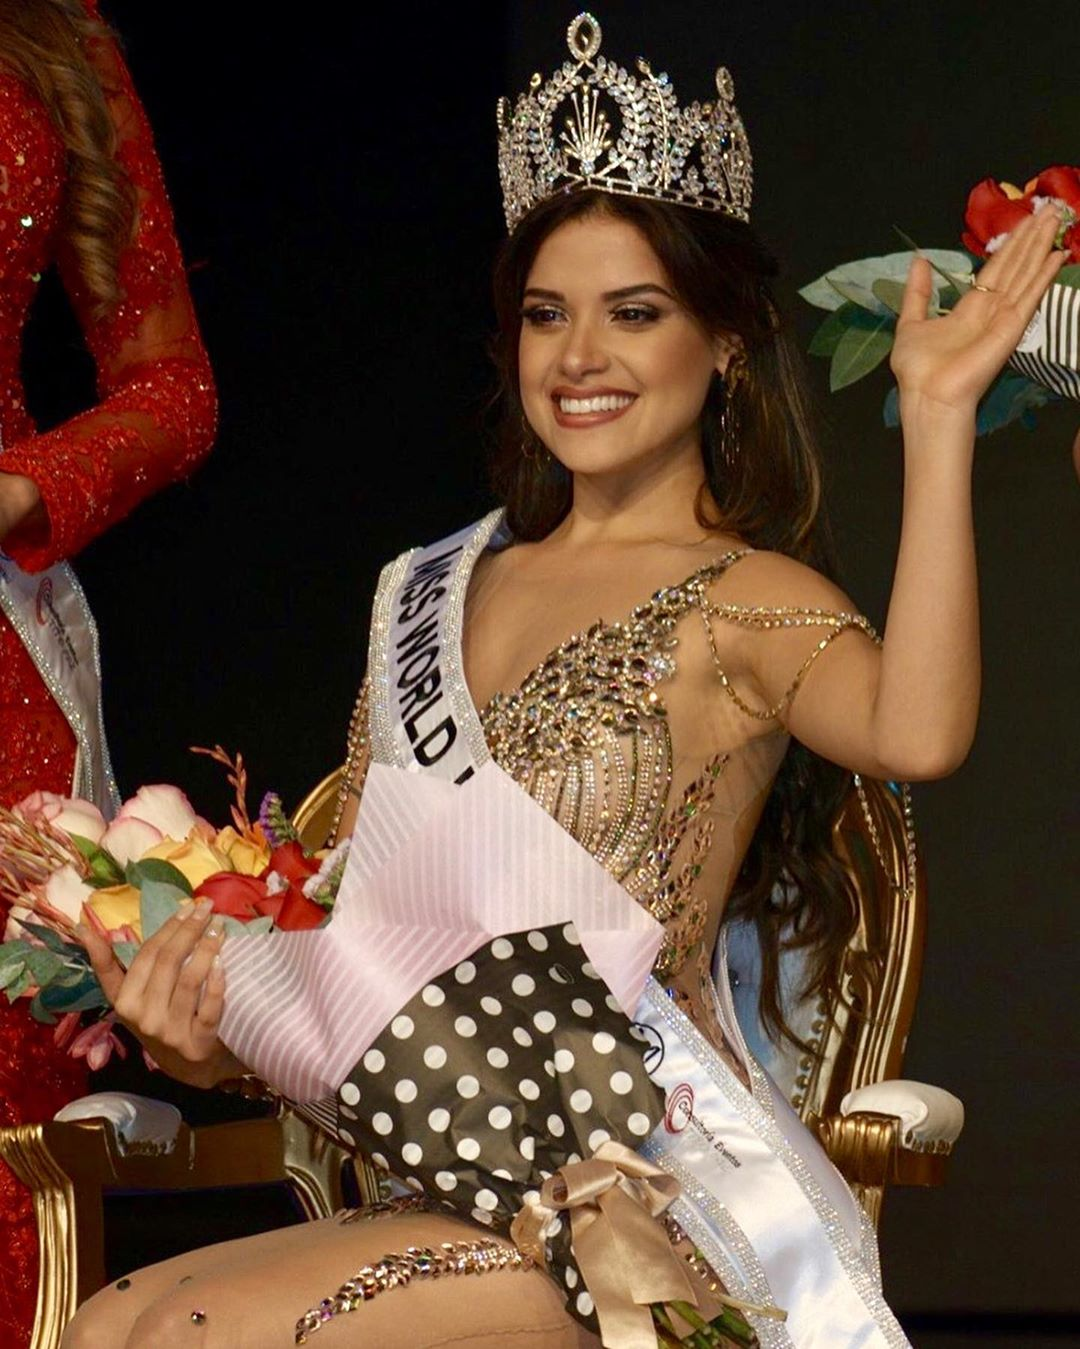 angella escudero, miss world peru 2019. 67339110